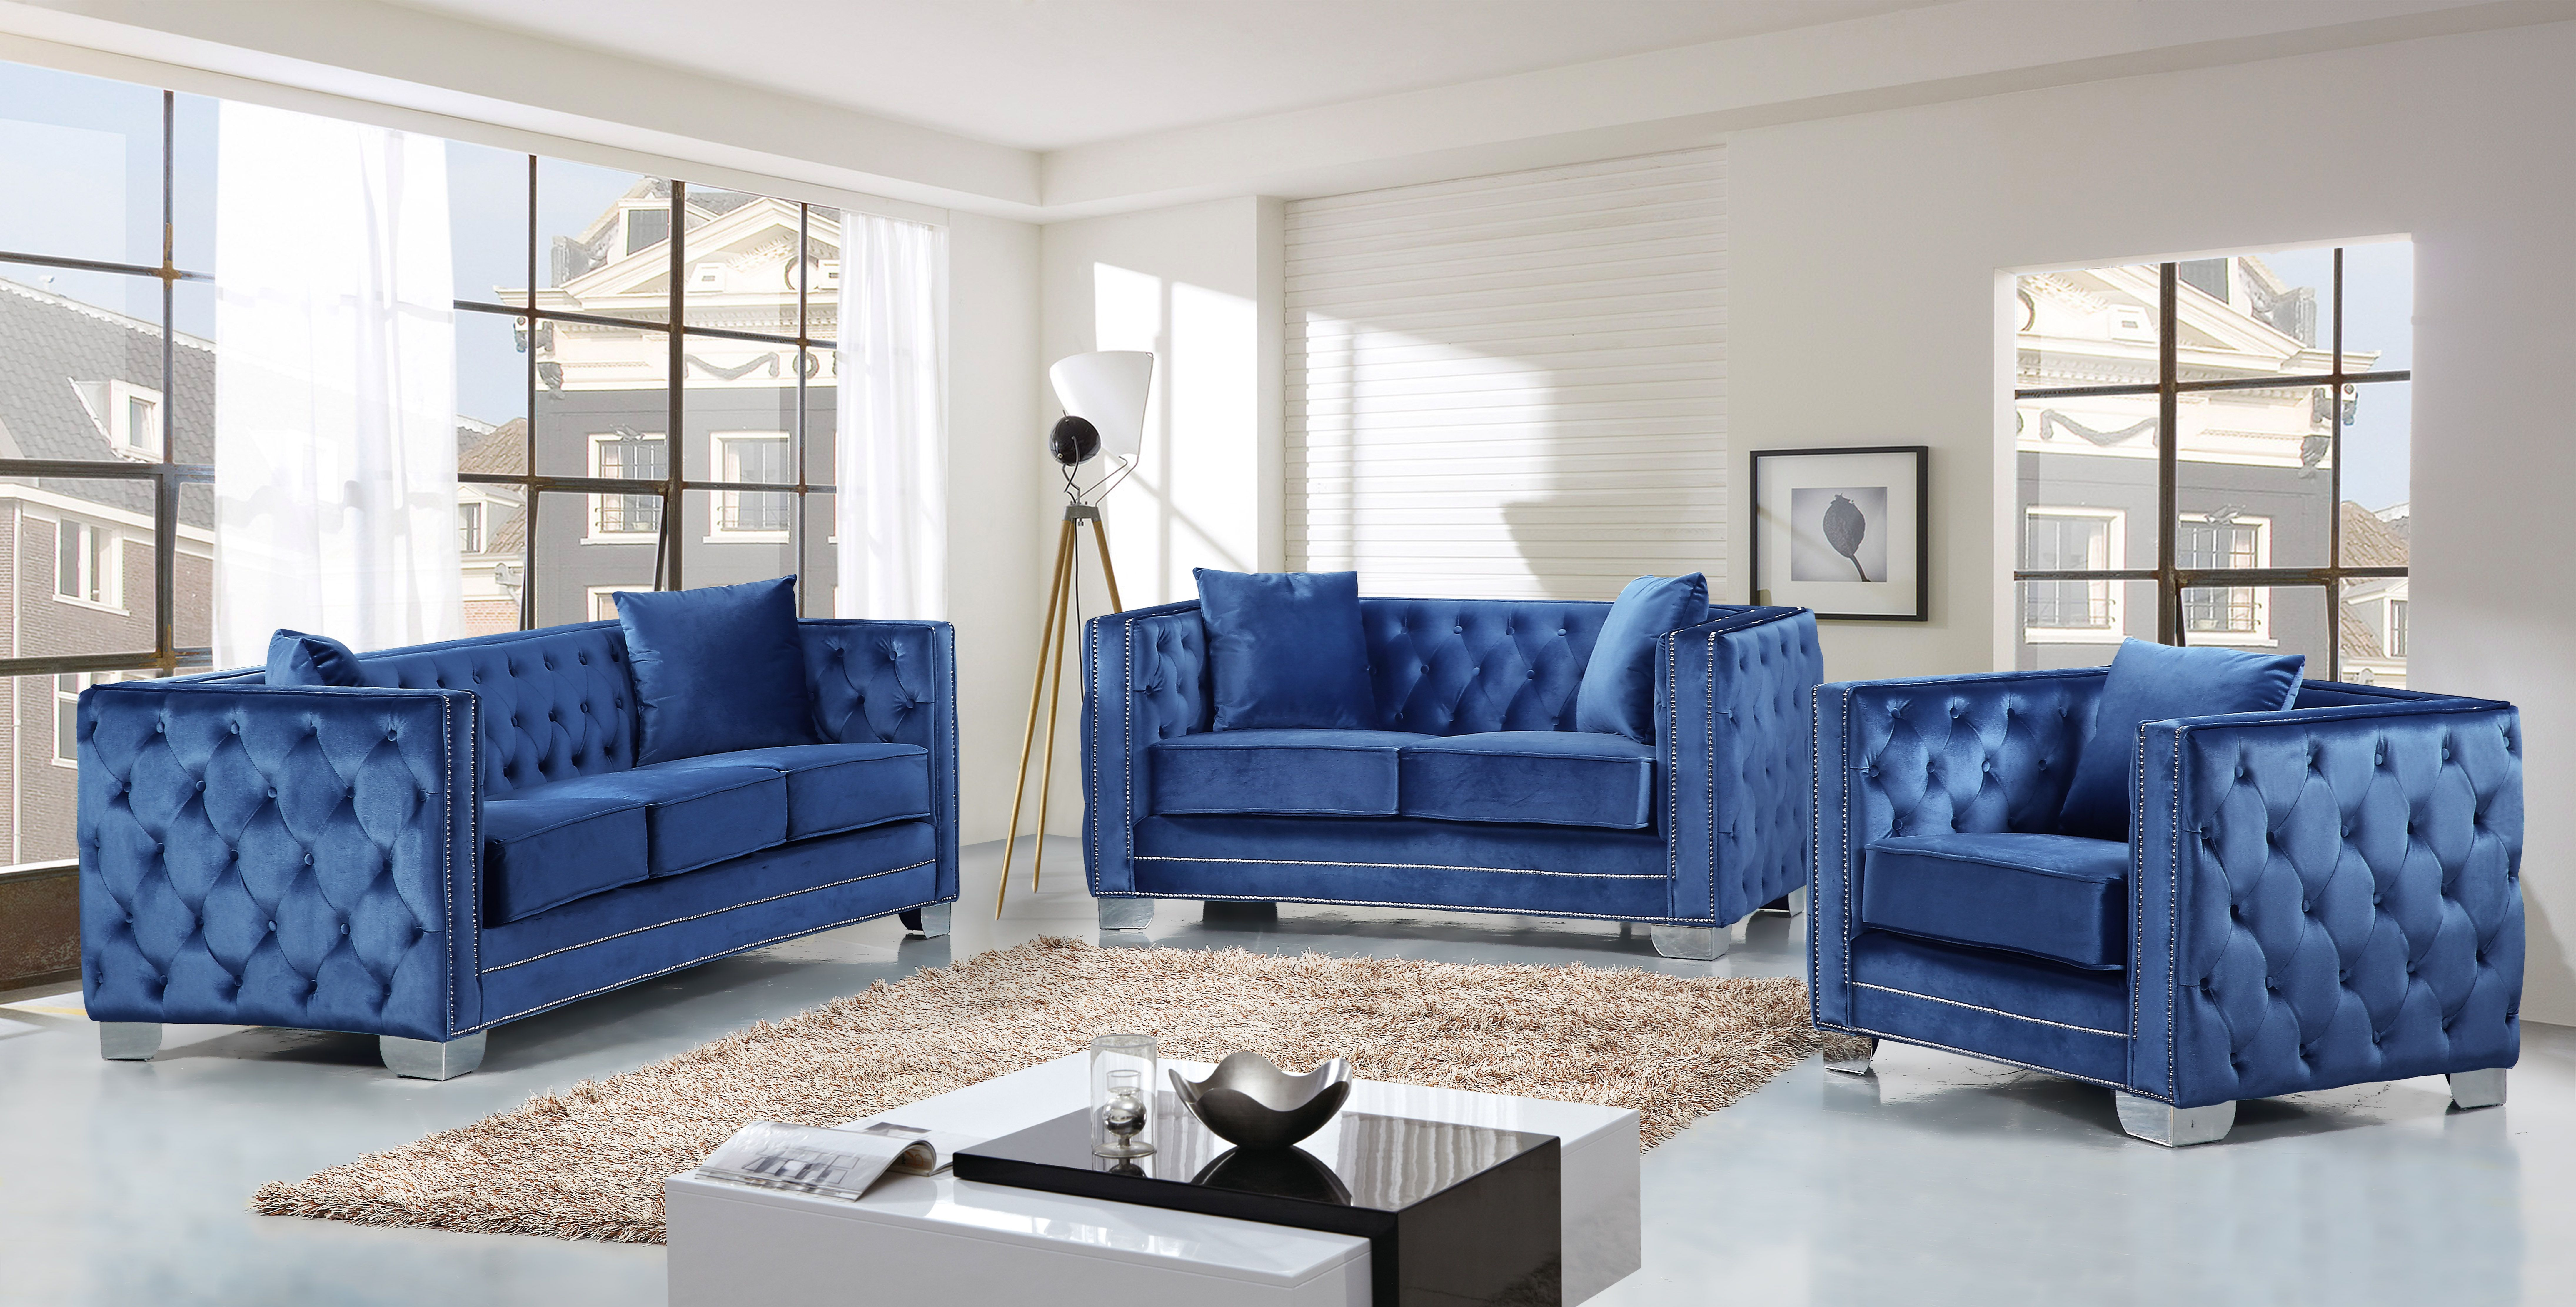 Reese Light Blue Velvet Living Room Set Rich Covers The Plush Comfortable Seat Padded With High Density Foam And Modern Tufted Design On Back